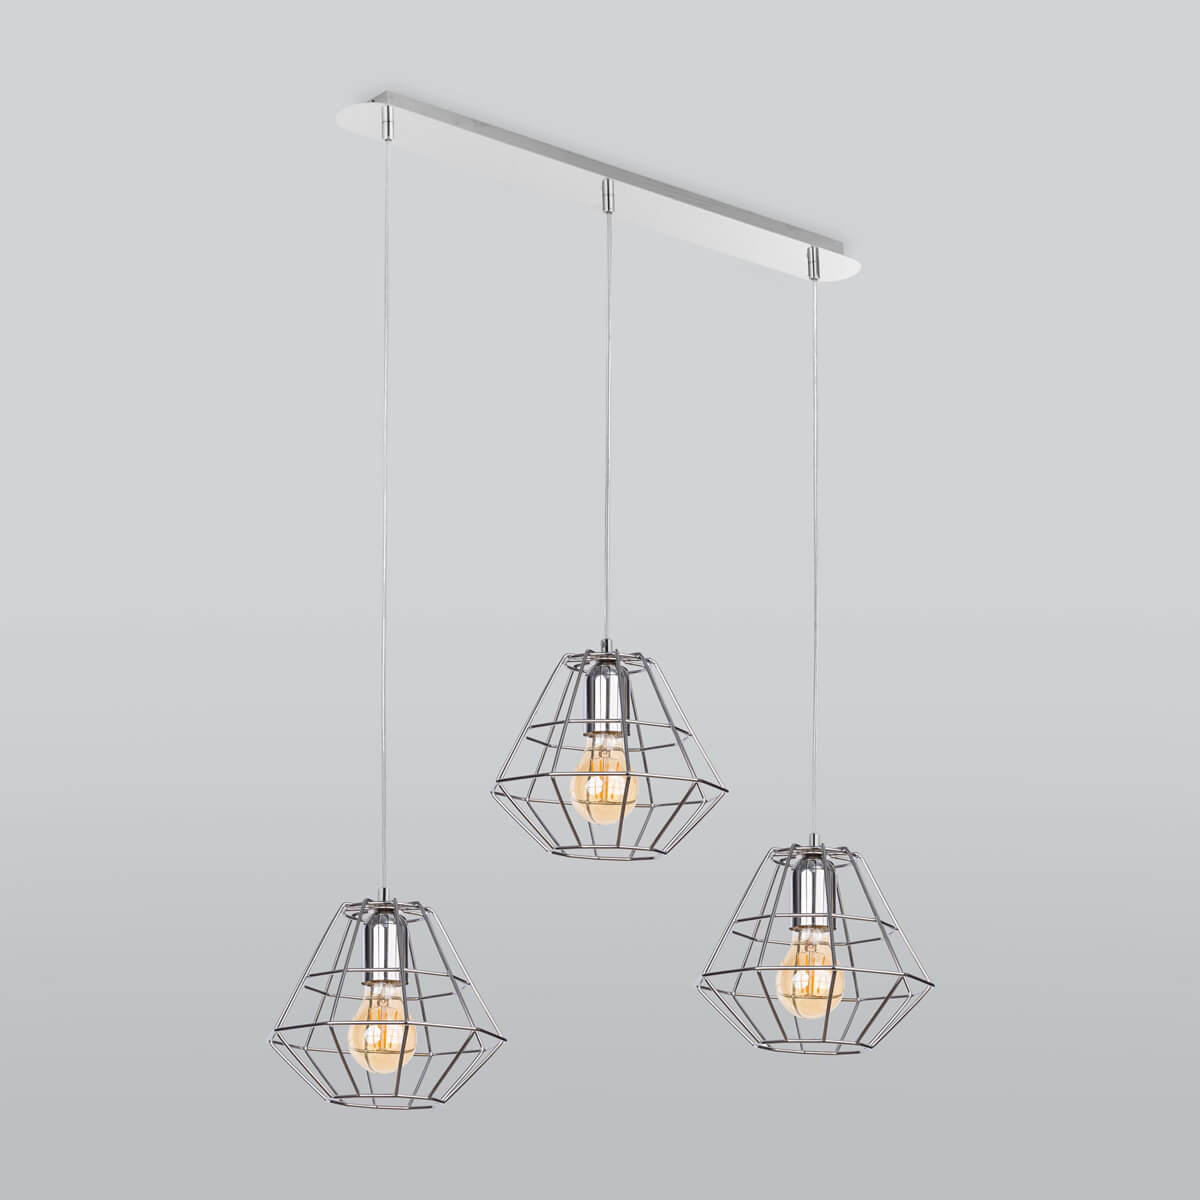 Светильник TK Lighting 4205 Diamond Silver